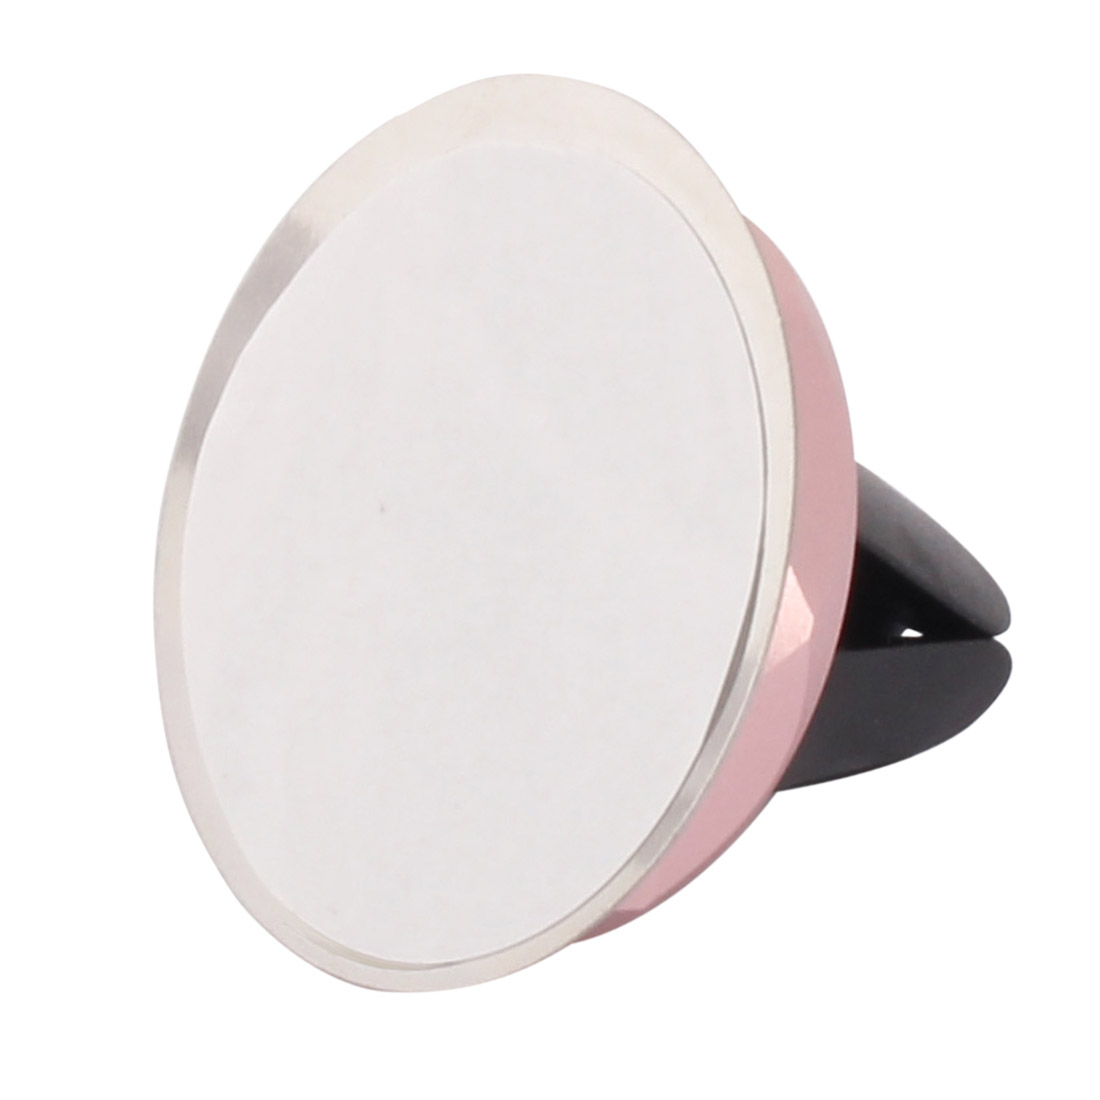 Car Magnetic Air Vent Mount Mobile Phone GPS Holder Stand Rose Gold Tone